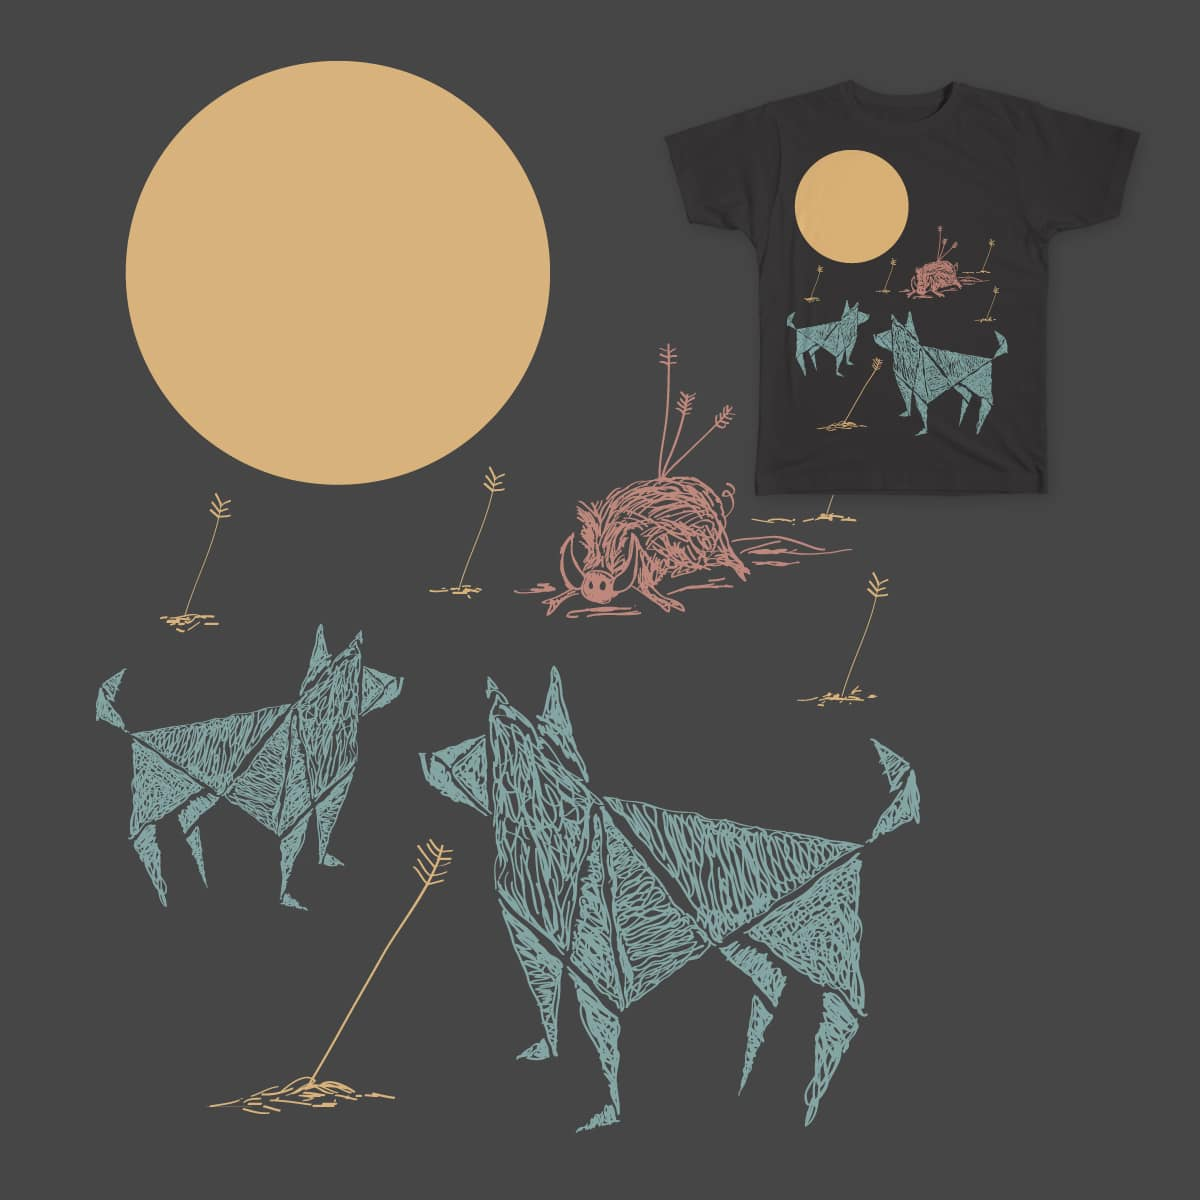 Hunting Party by pepelepew251 on Threadless